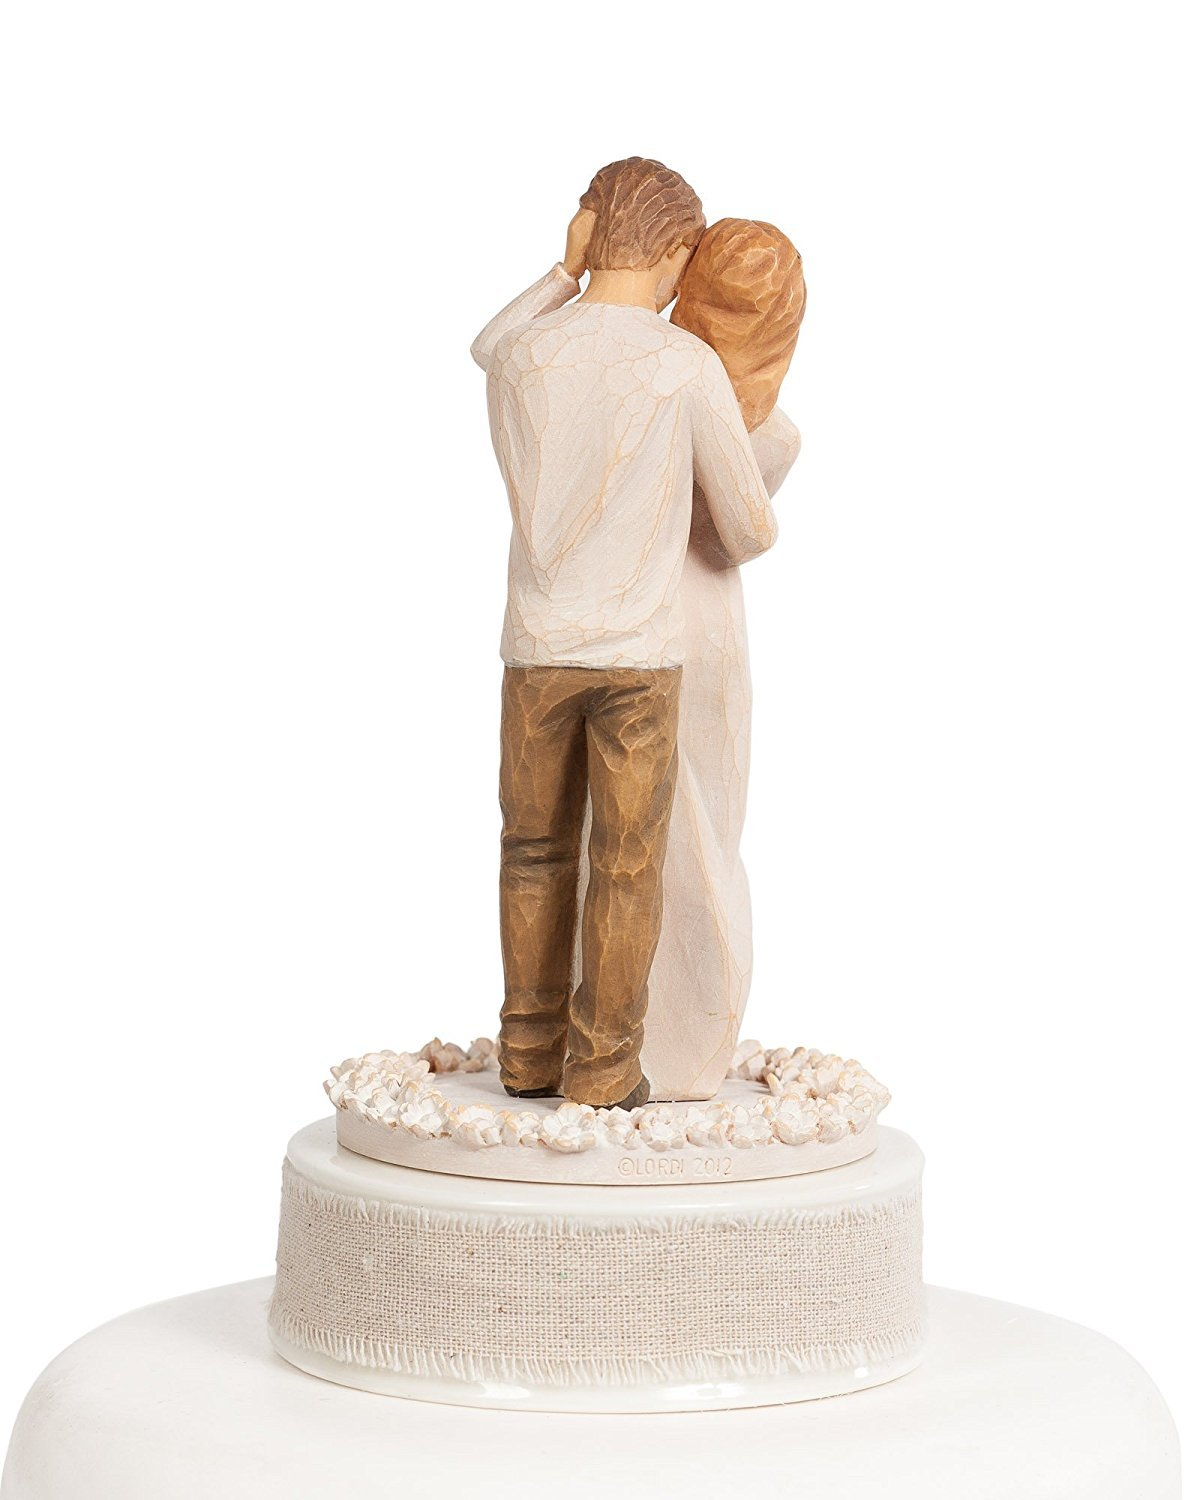 Personalized Willow Tree ''Together'' Wedding Cake Topper ... by DEMDACO - Home (Image #4)